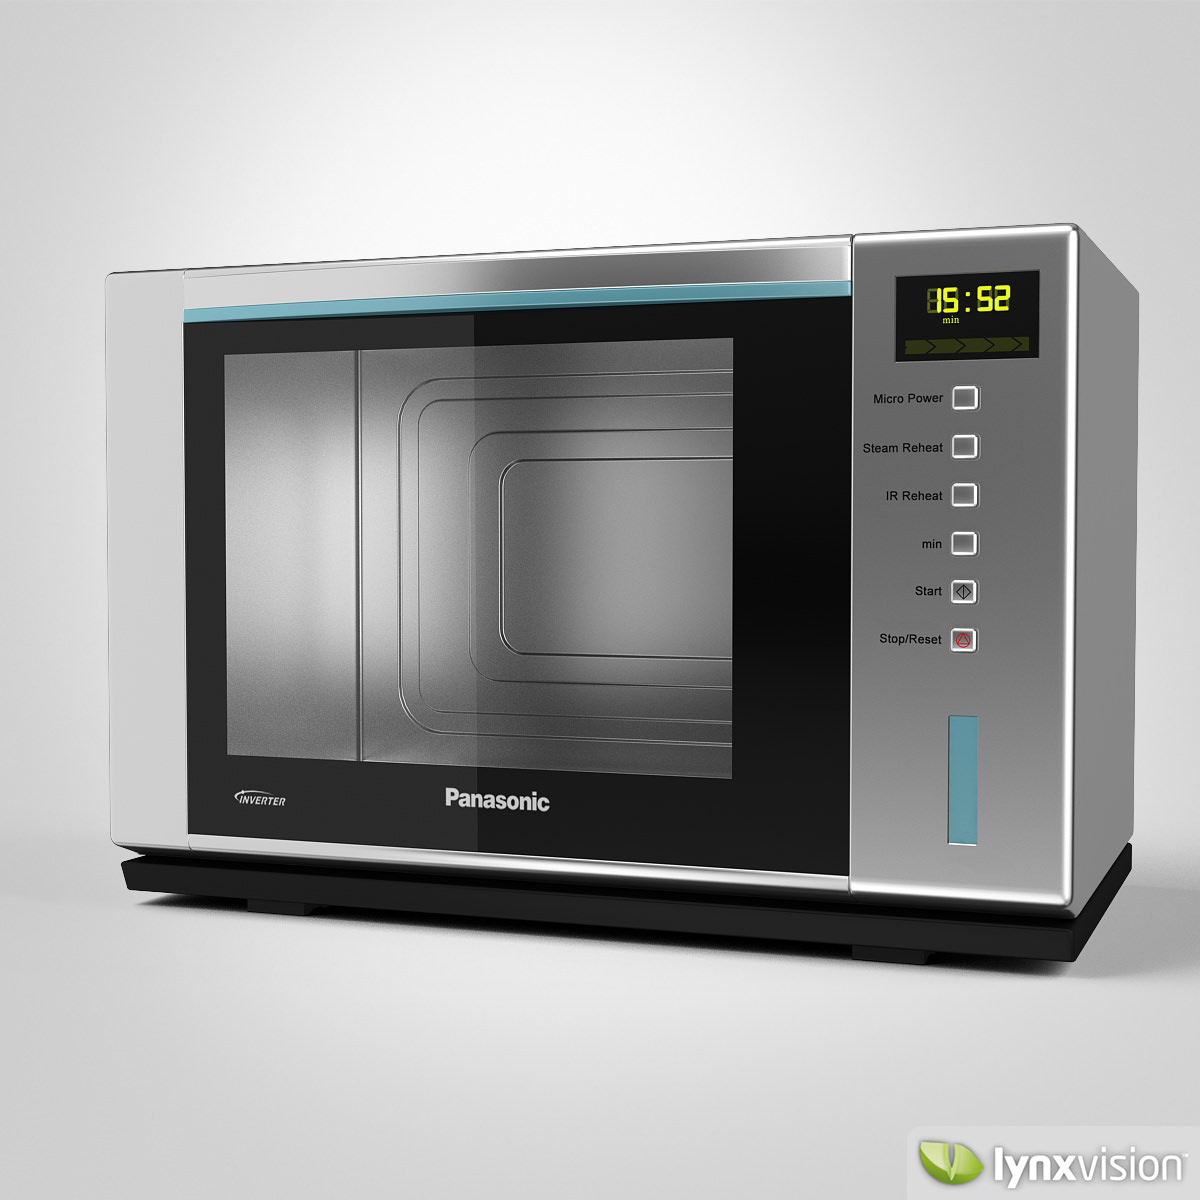 Panasonic Microwave Steam Oven Model Max Obj Fbx Mtl 1